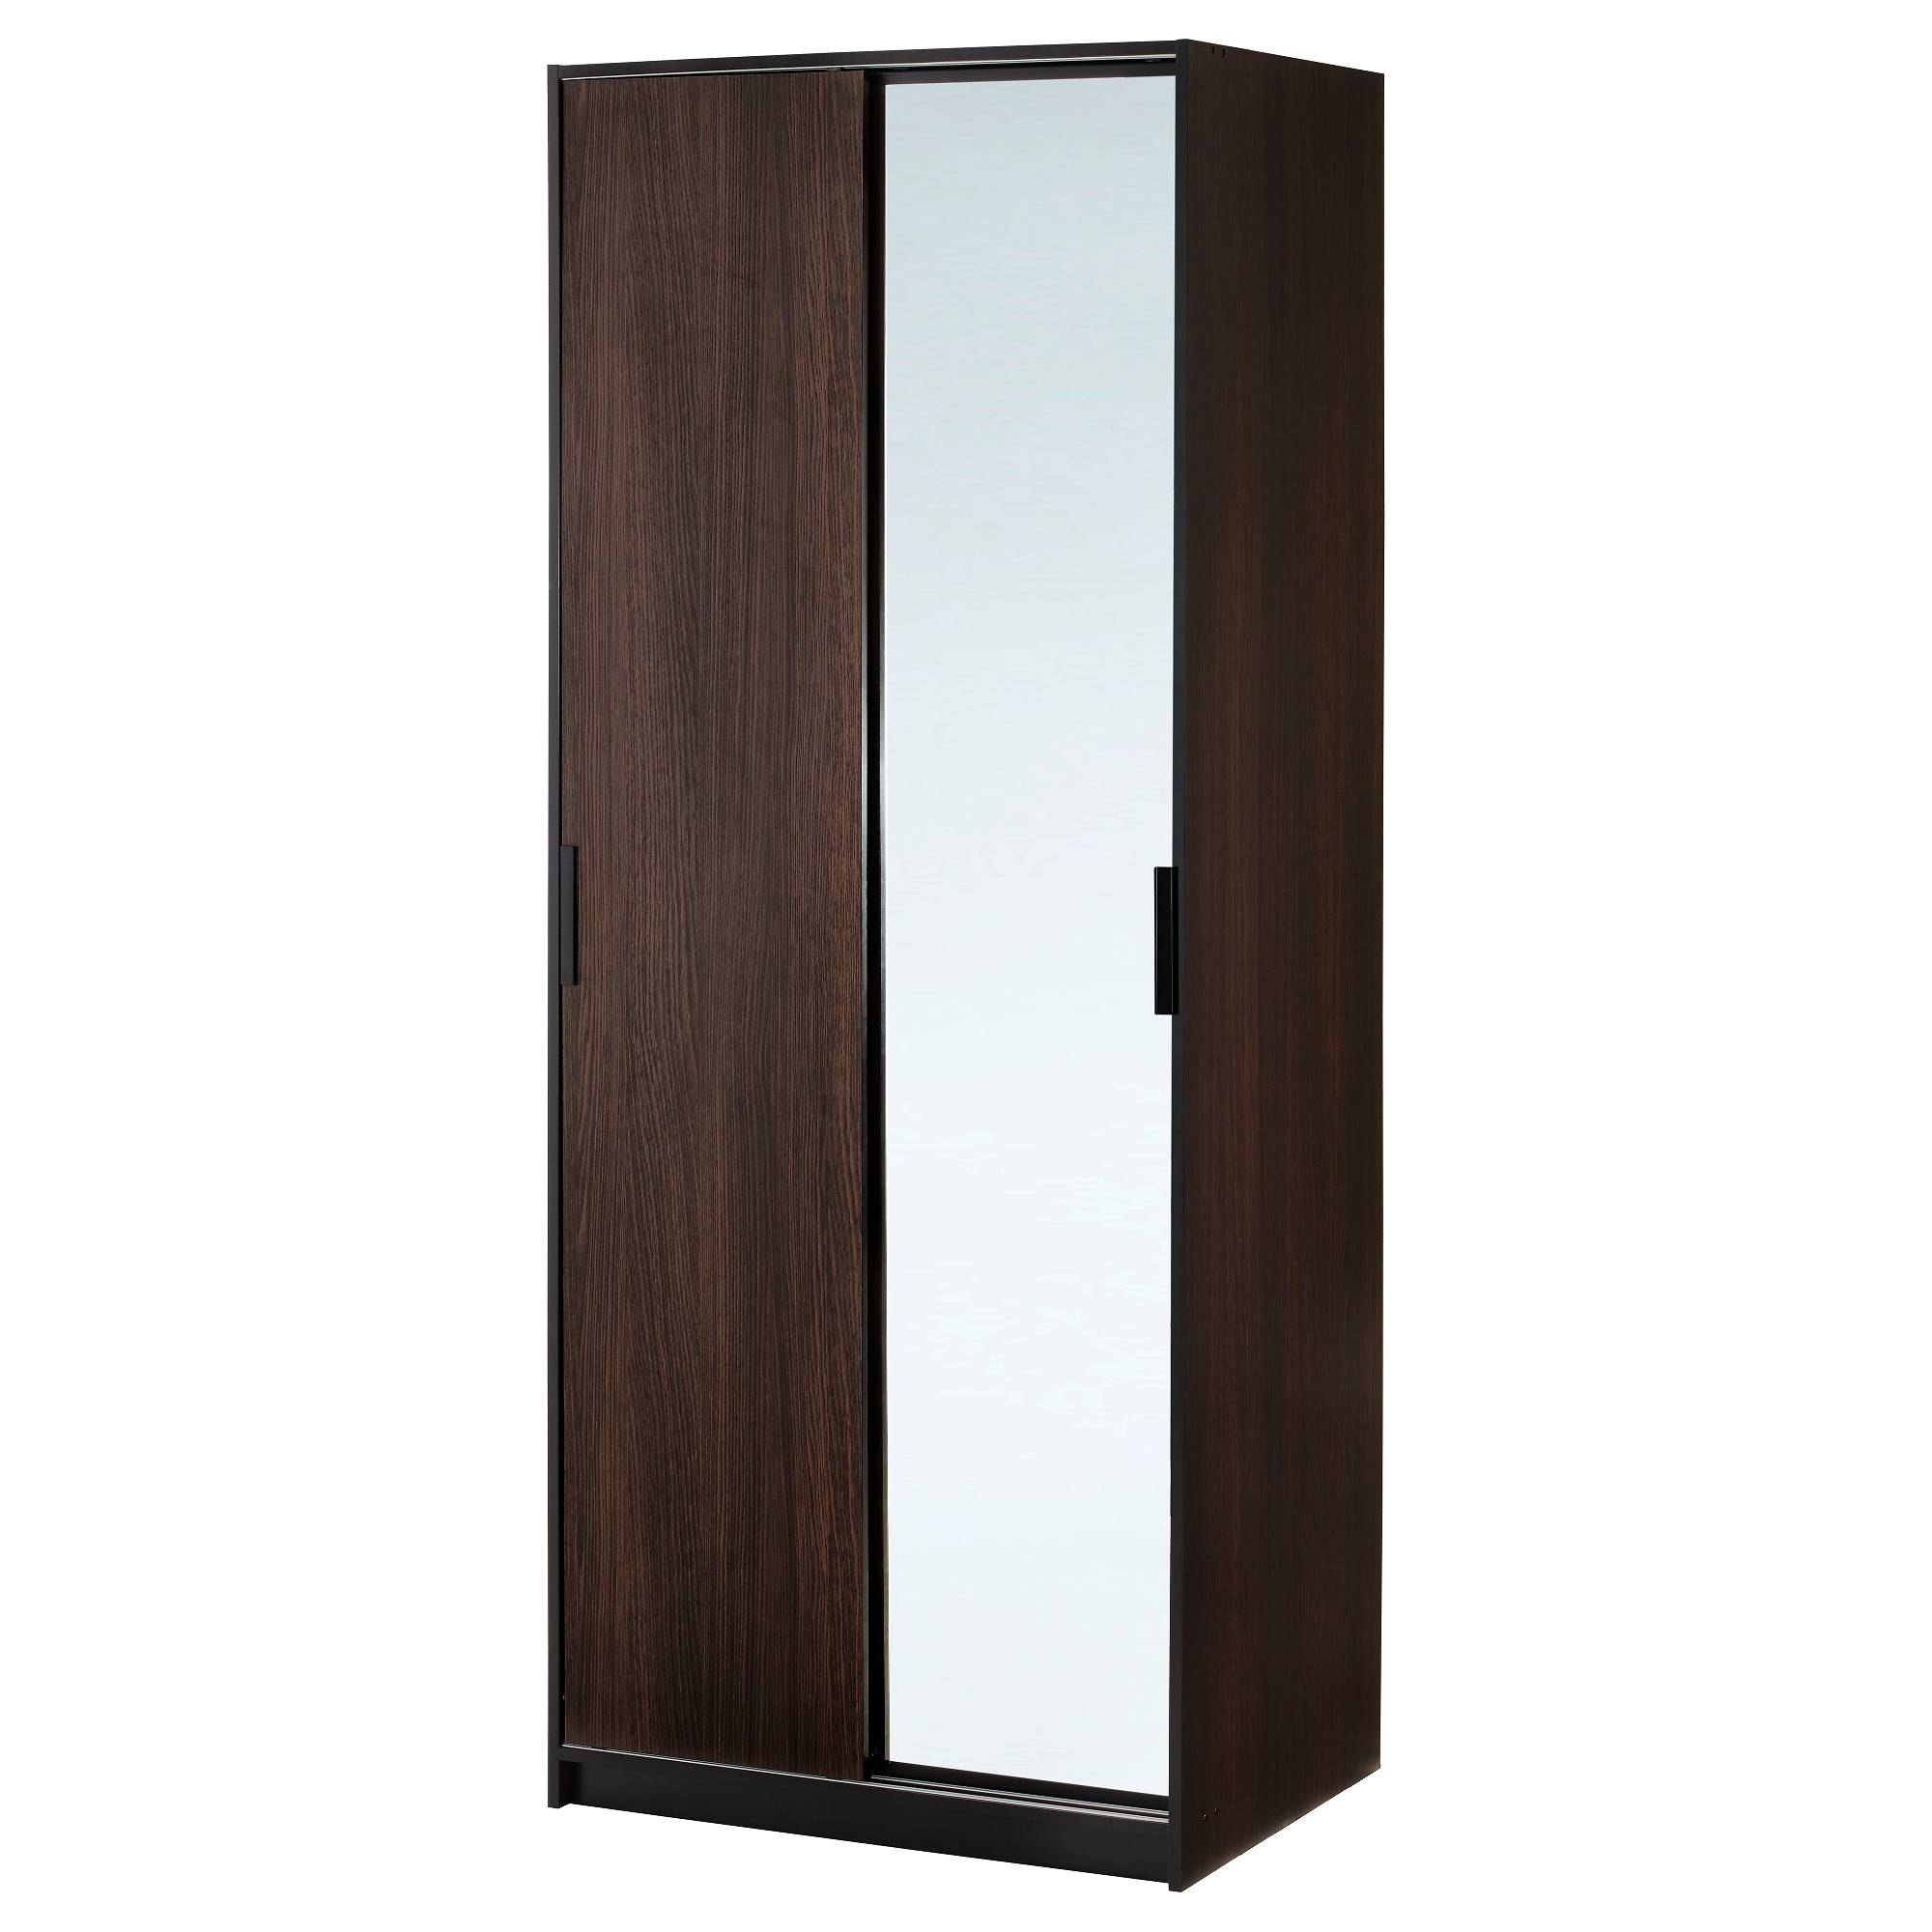 Wardrobes & Armoires – Open, Fitted, Sliding Doors & More - Ikea with Black Wardrobes With Mirror (Image 15 of 15)